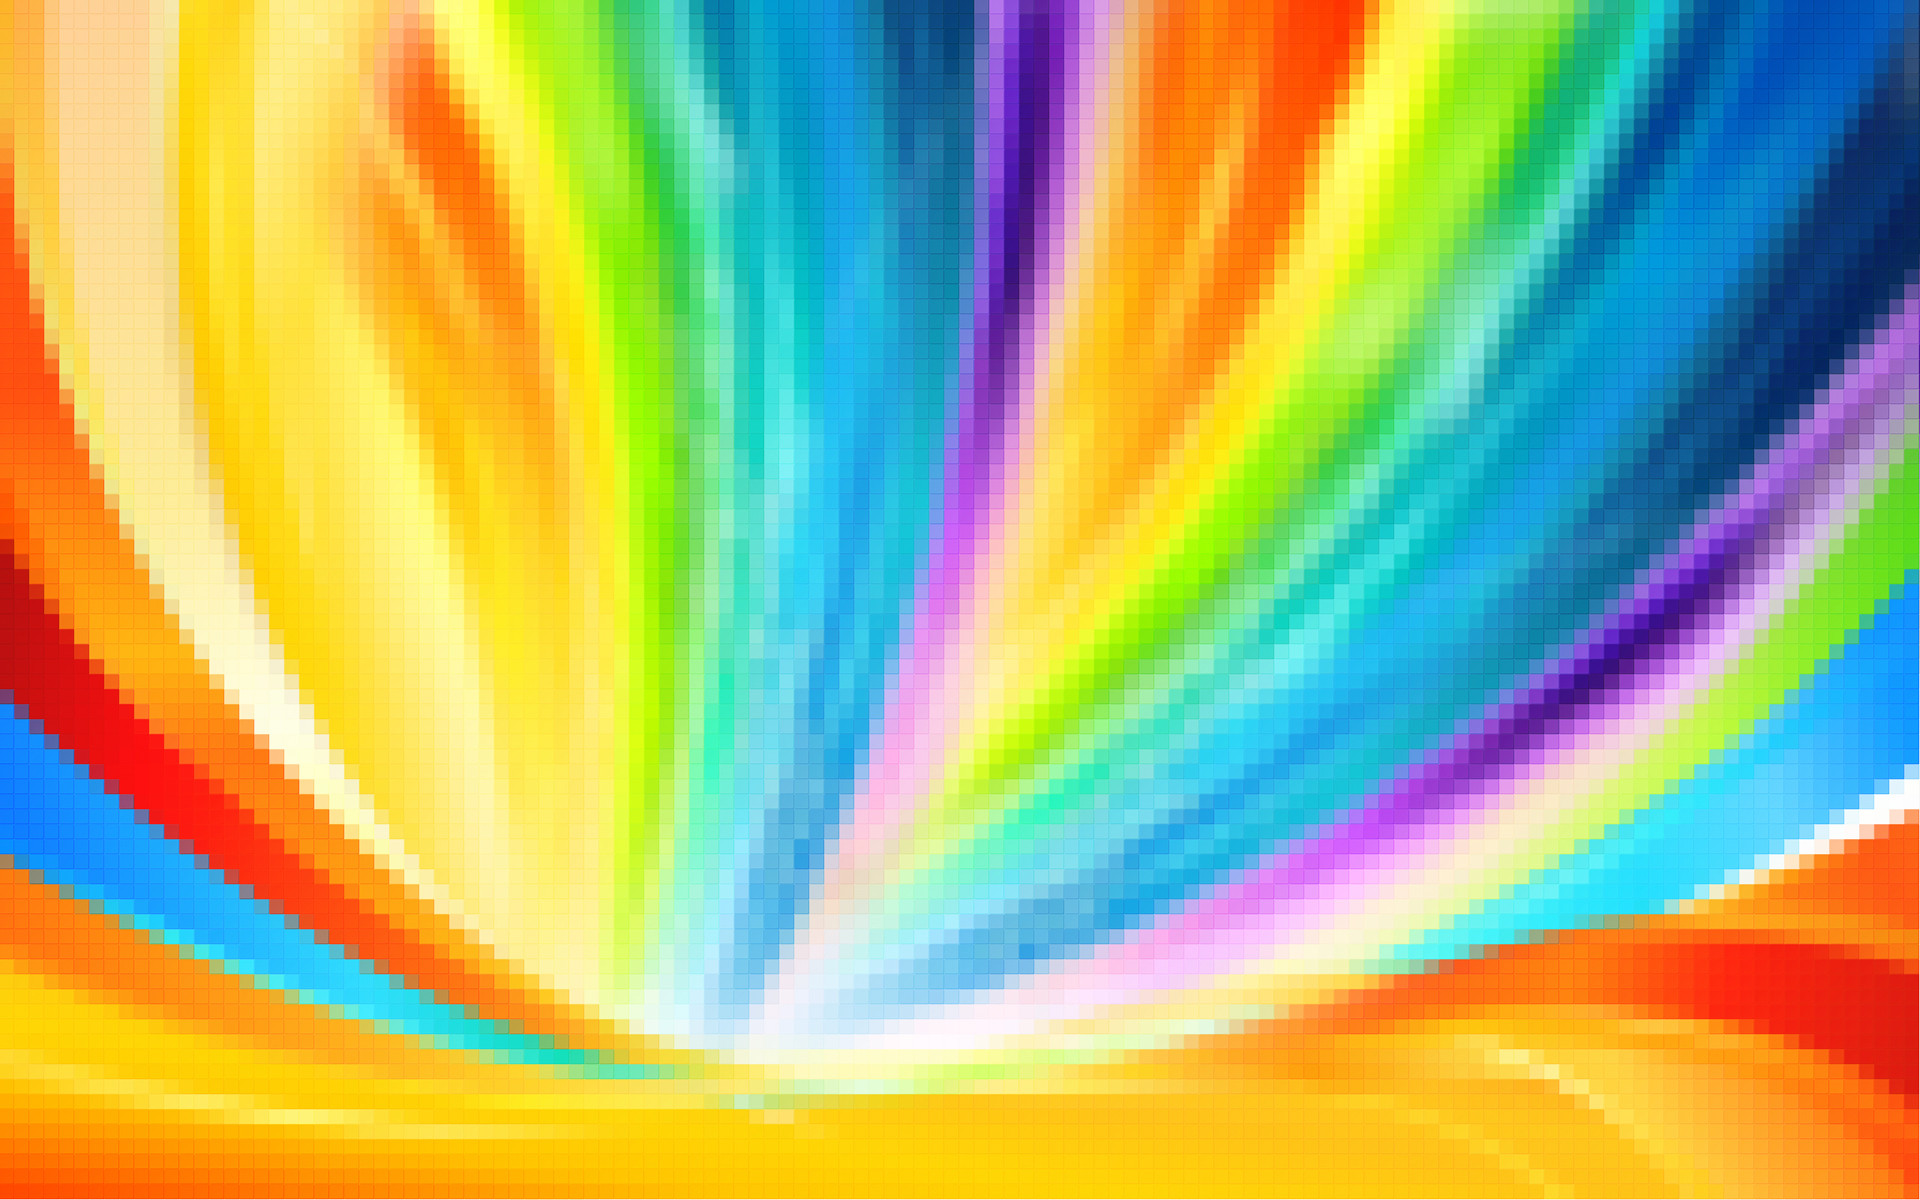 1920x1200 Colorful Backgrounds Wallpapers - WallpaperSafari